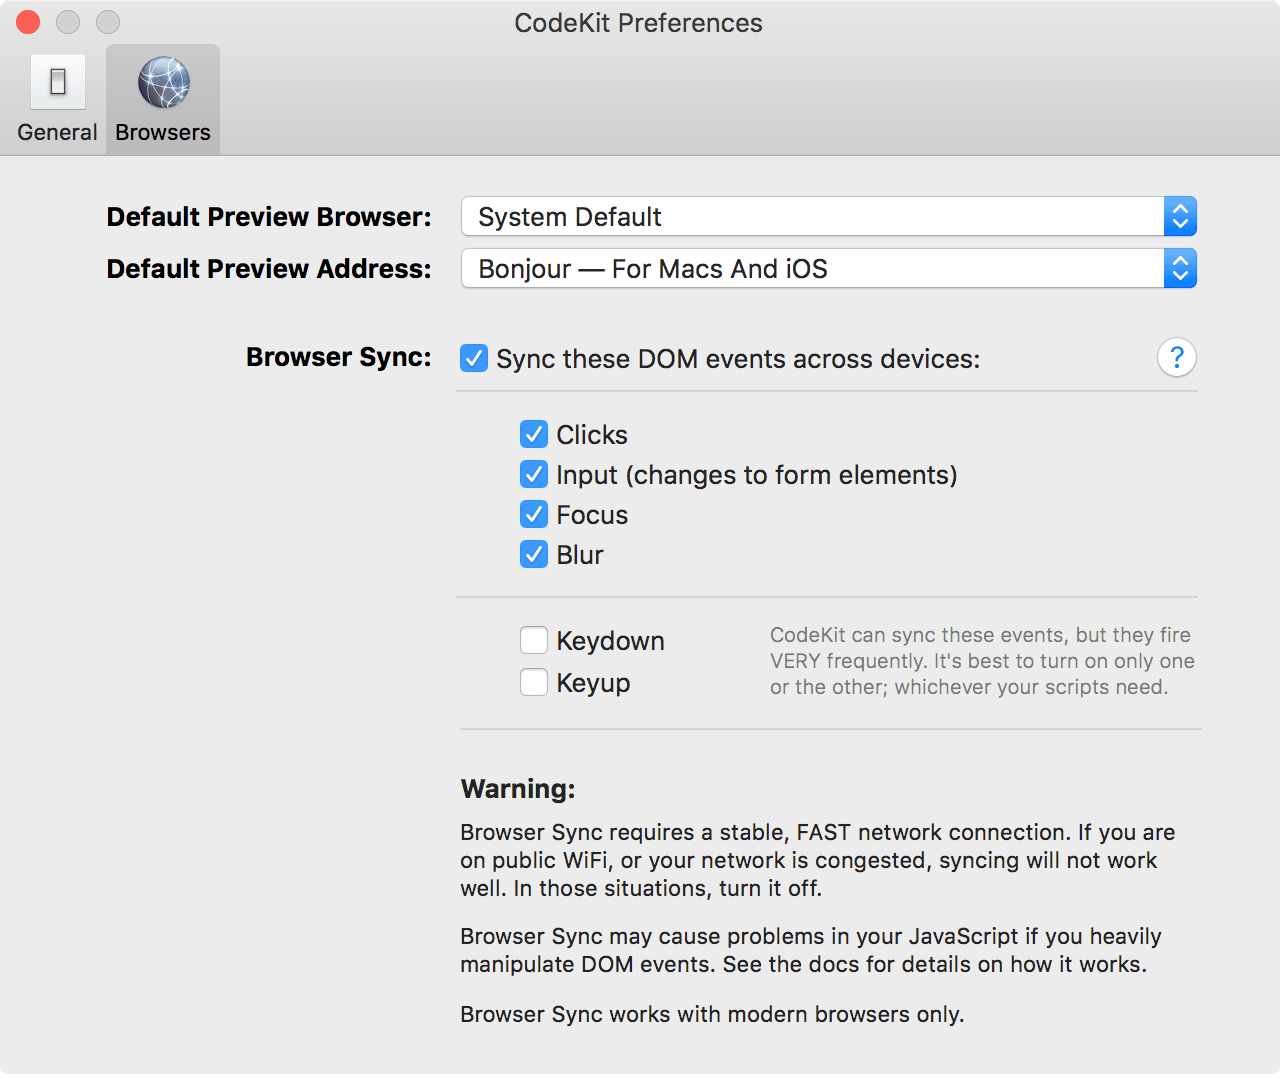 codekit 3's Server Pref